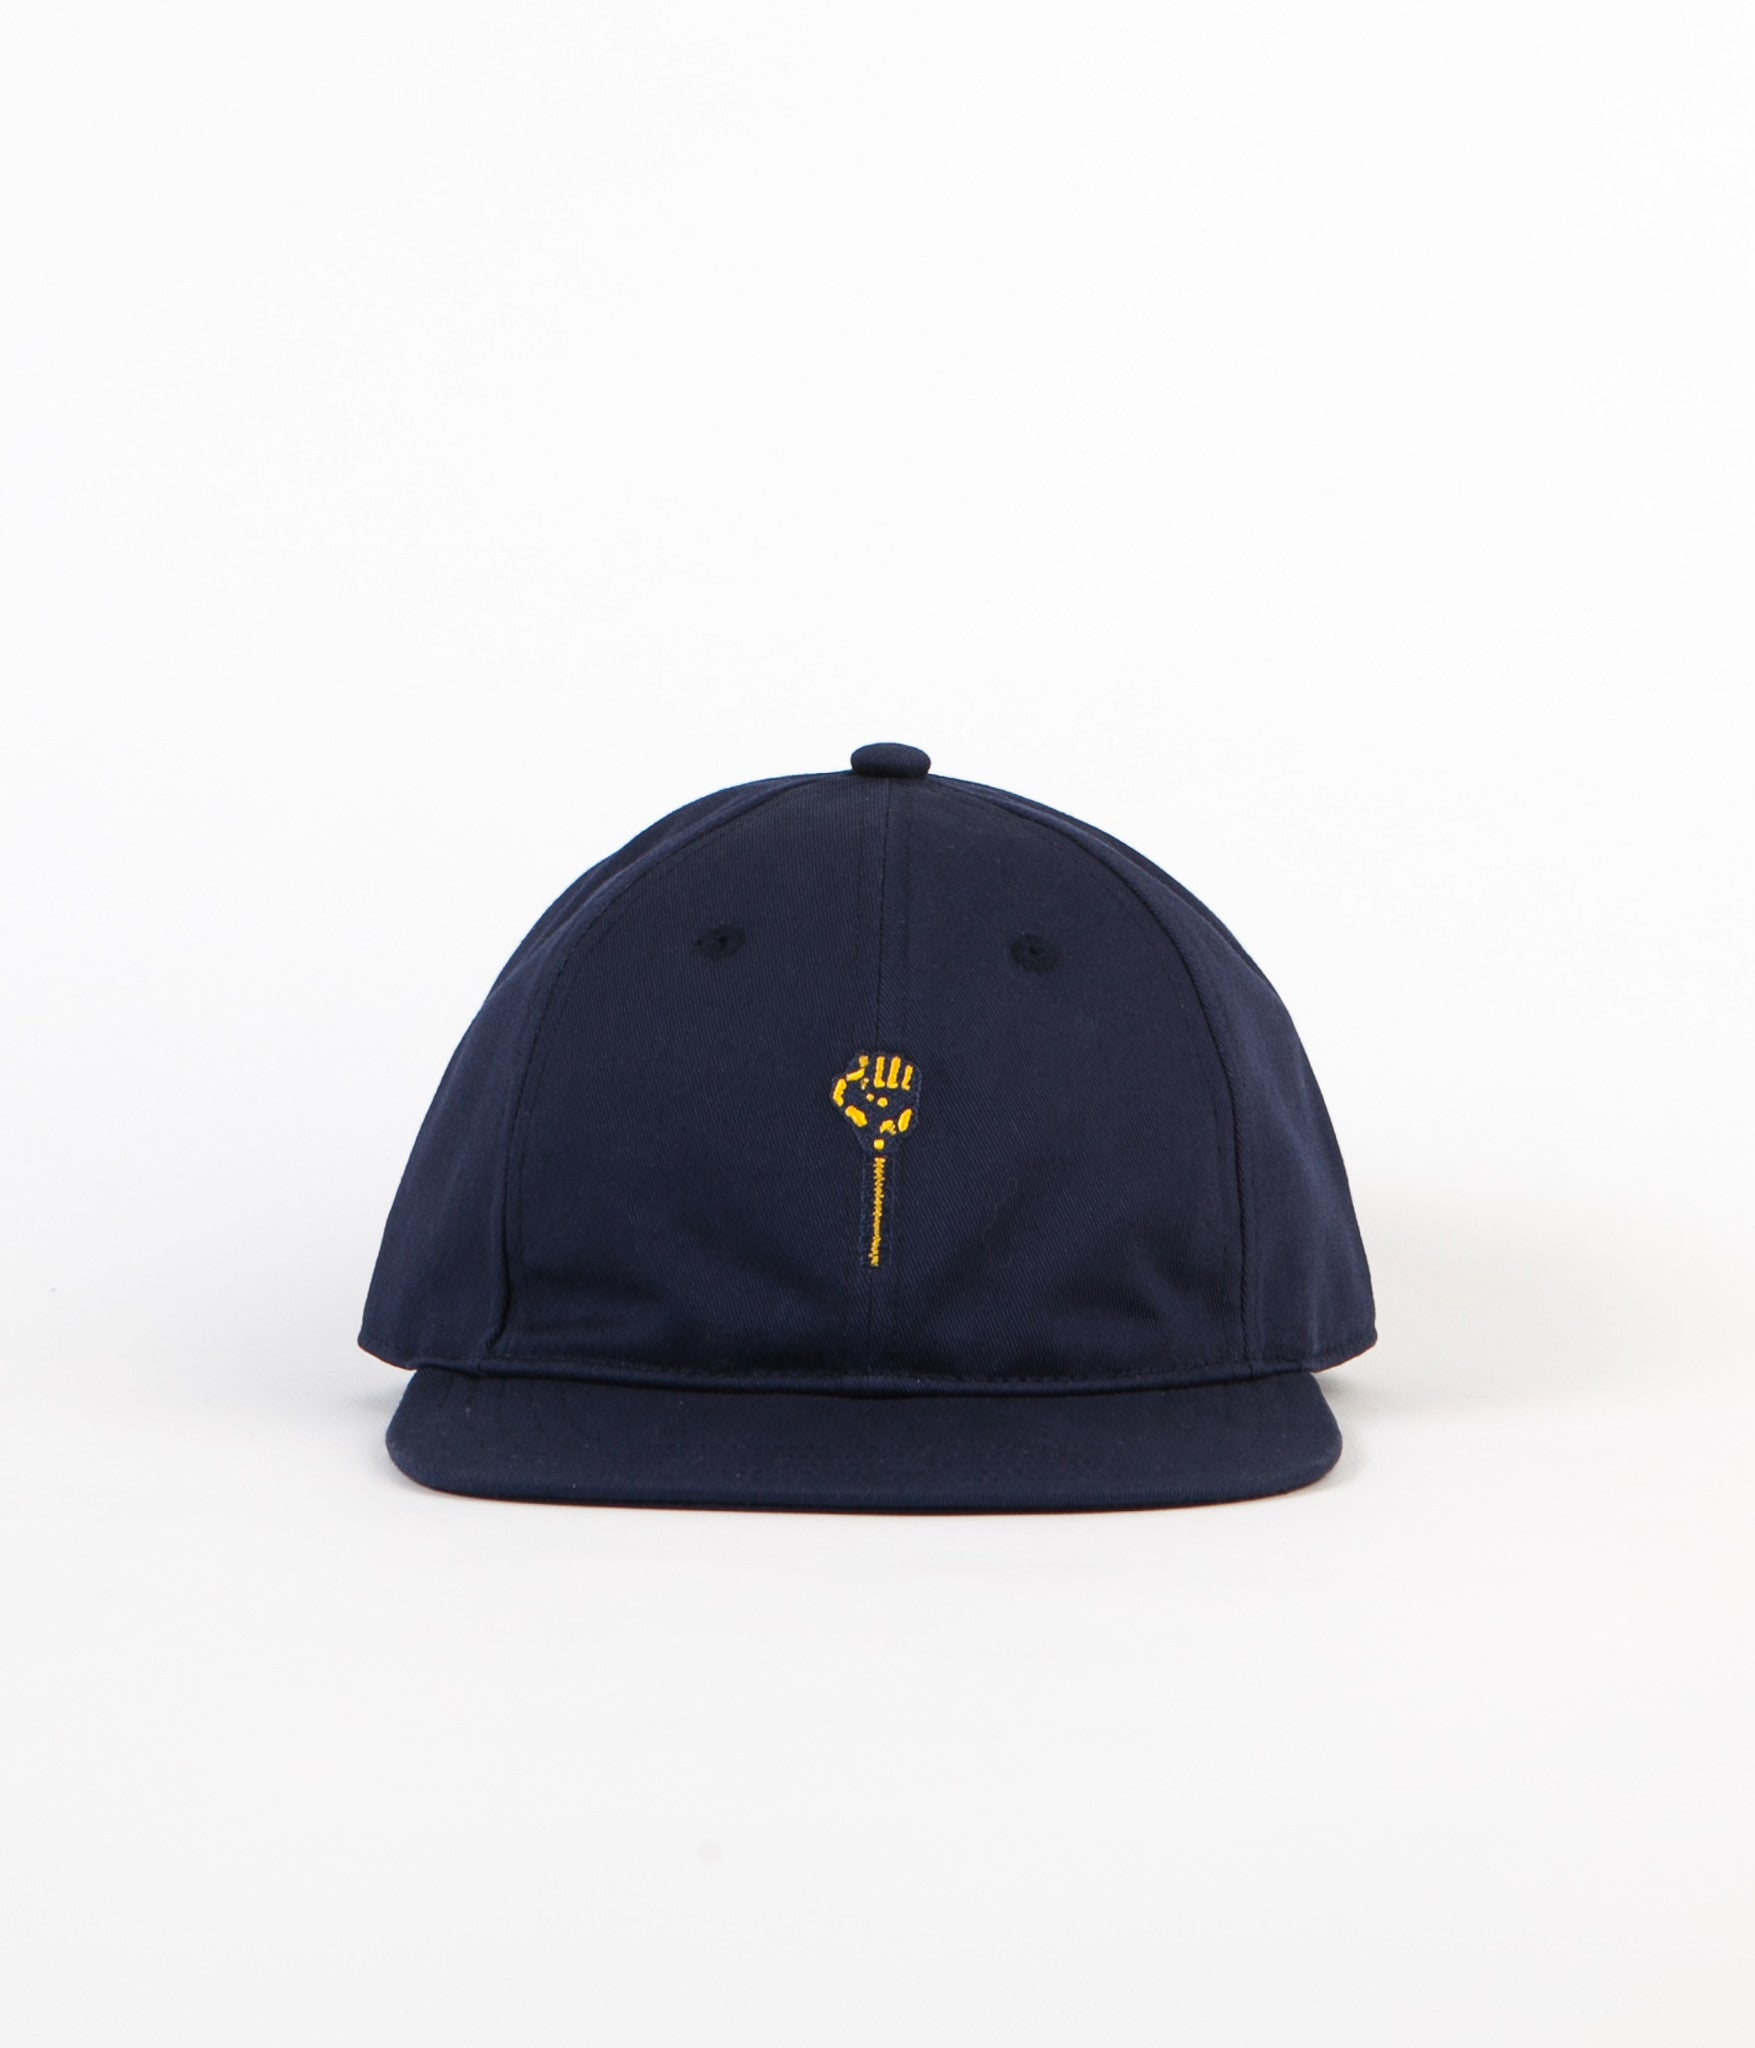 Adidas x Hardies 6 Panel Cap - Collegiate Navy